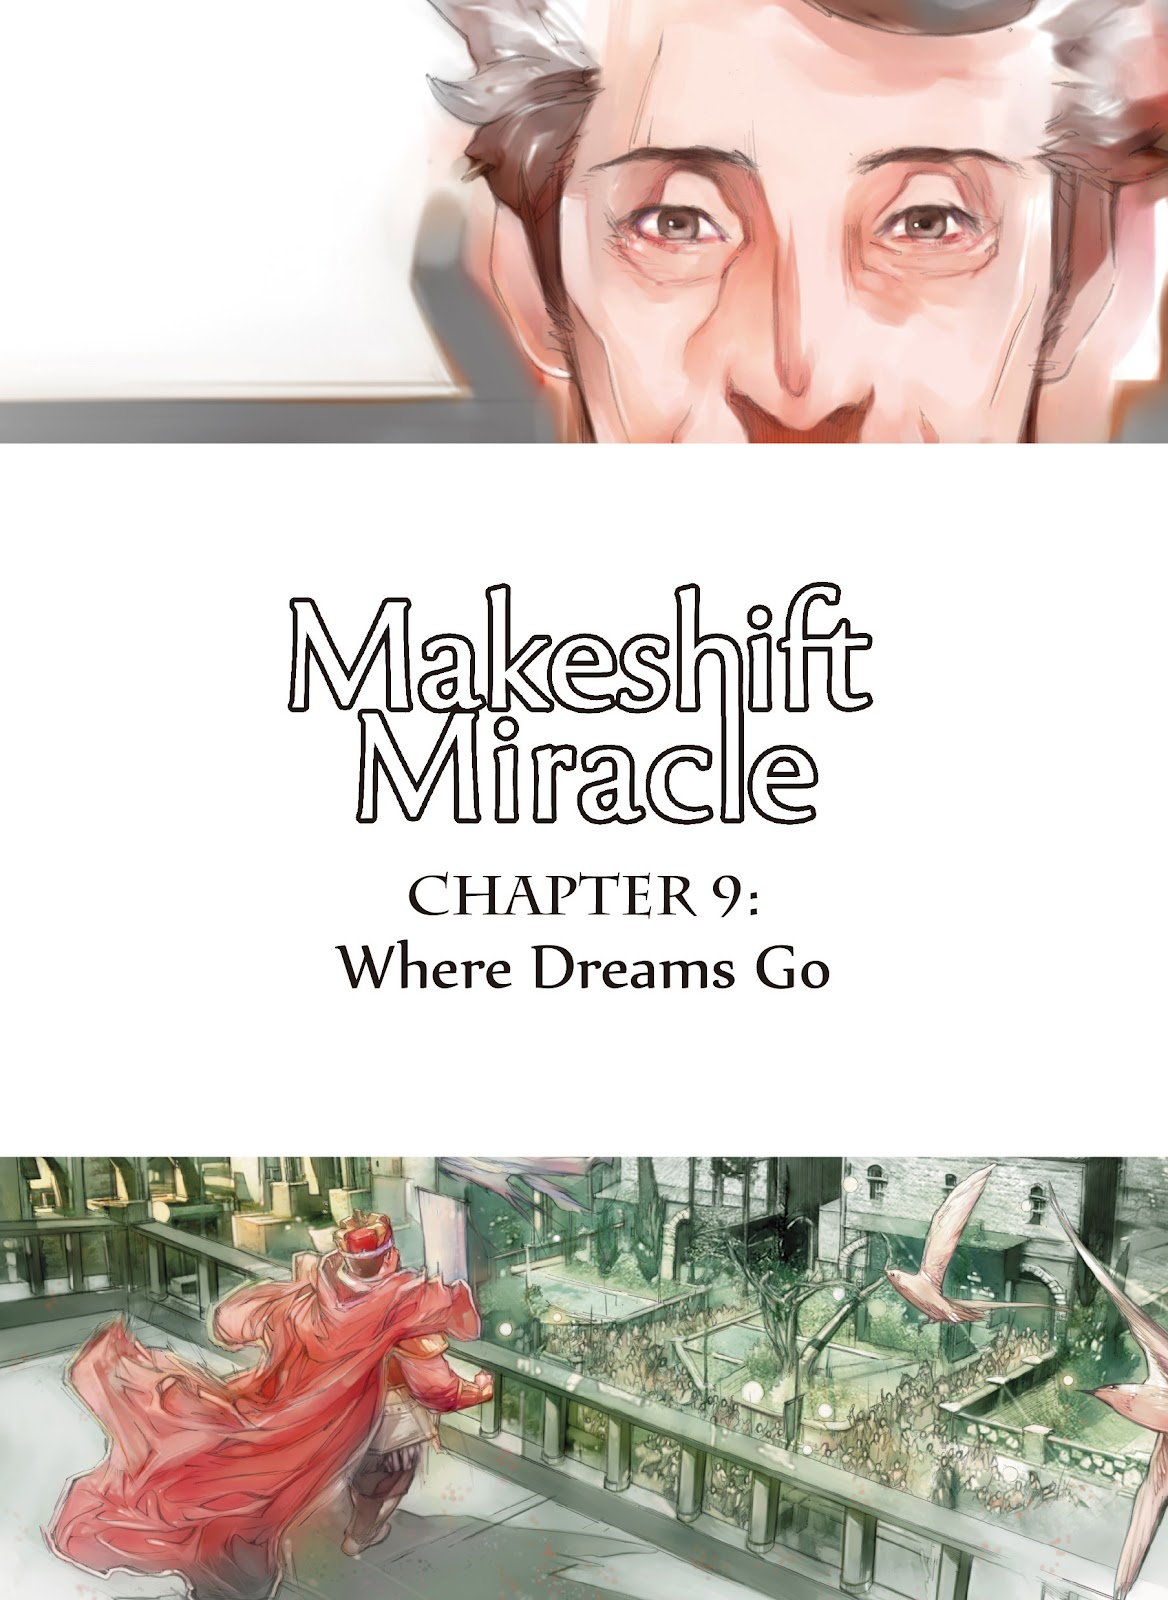 Makeshift Miracle: The Girl From Nowhere 9 Page 1